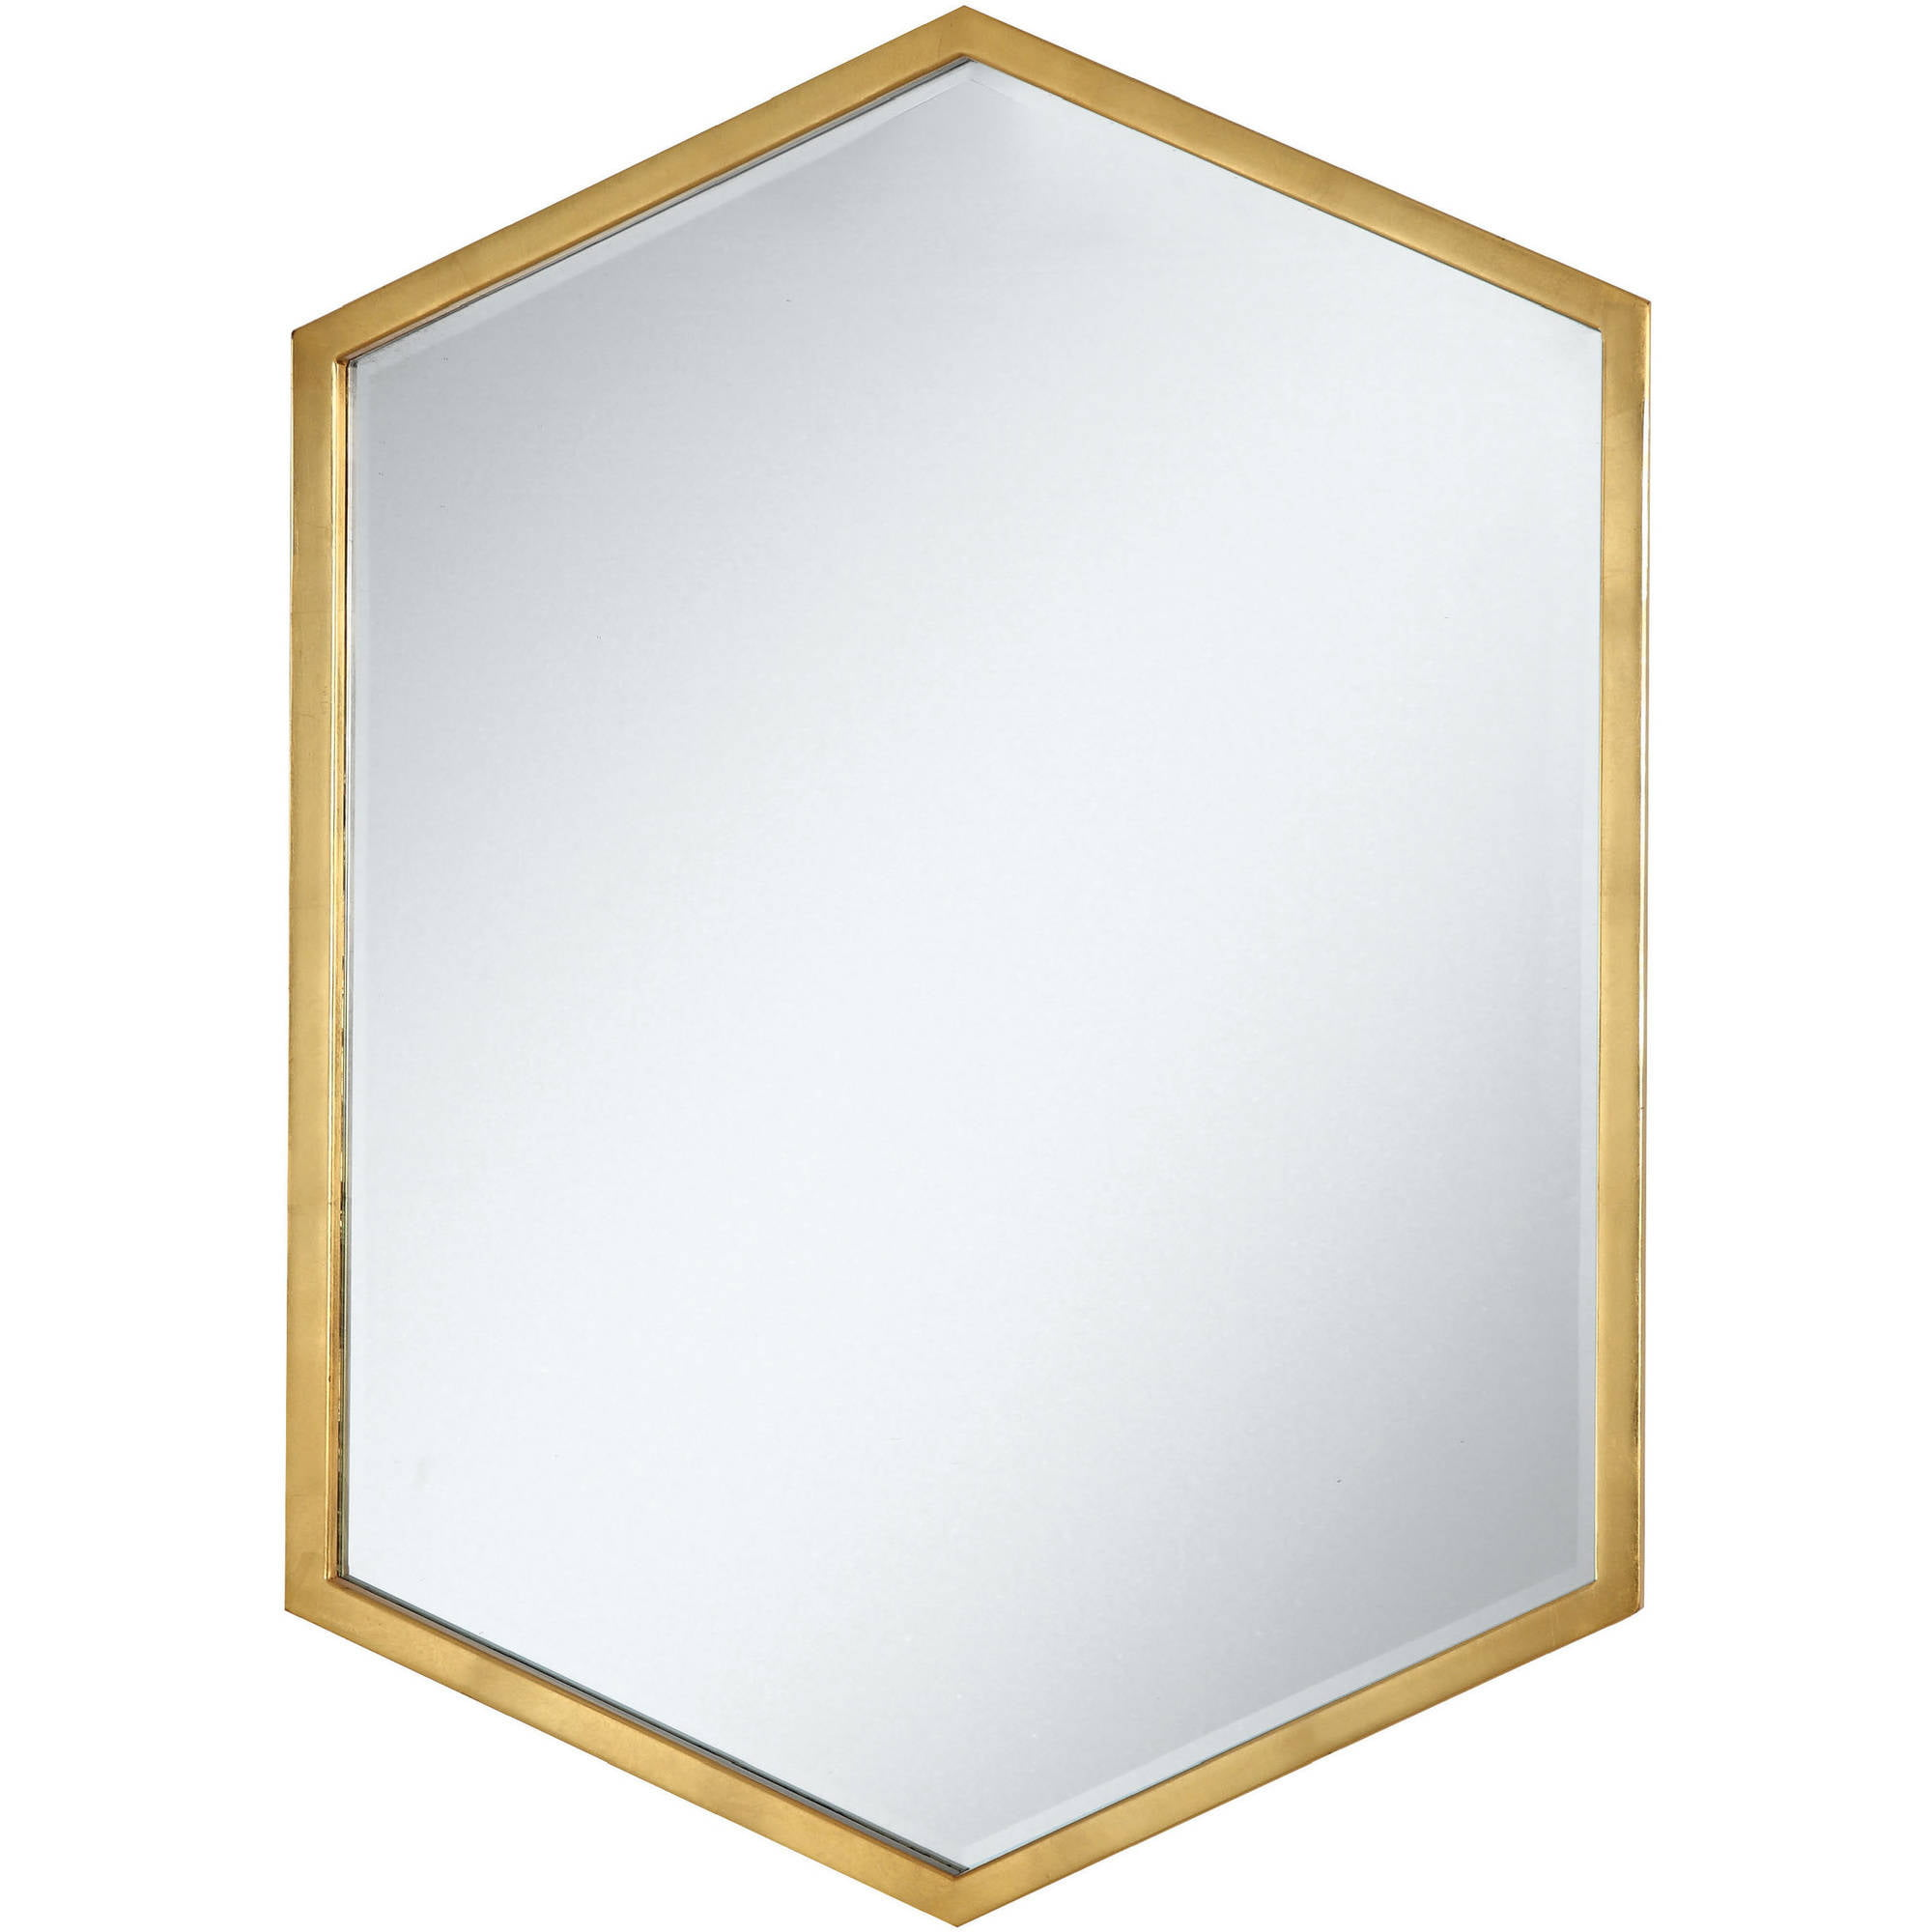 "Coaster Company Versatile Hexagon Design 34""x24"" Mirror, Gold Frame by Coaster Company"